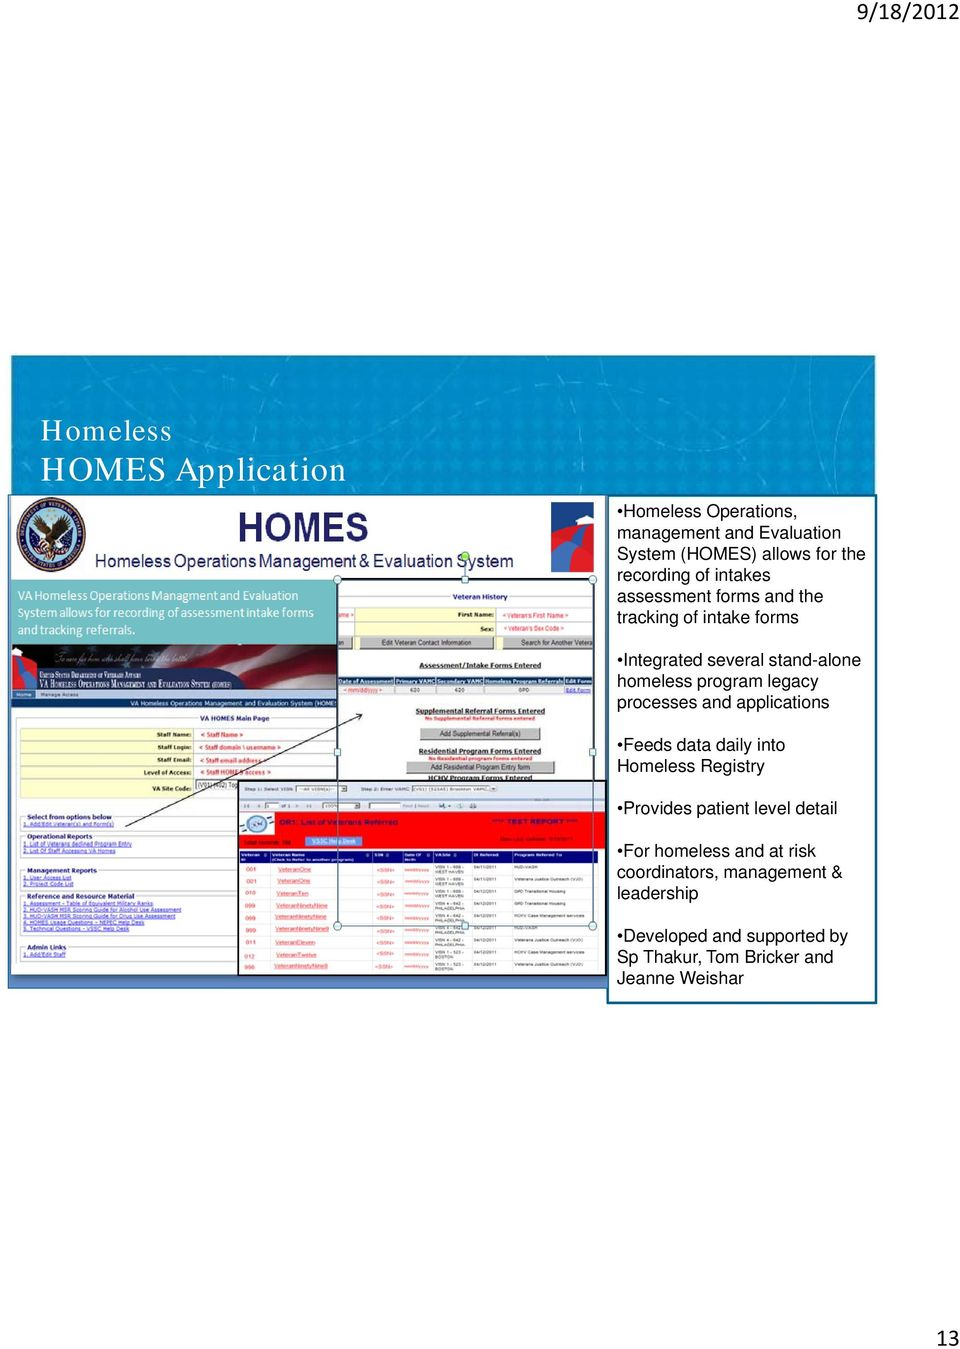 download homeless operations management system homes